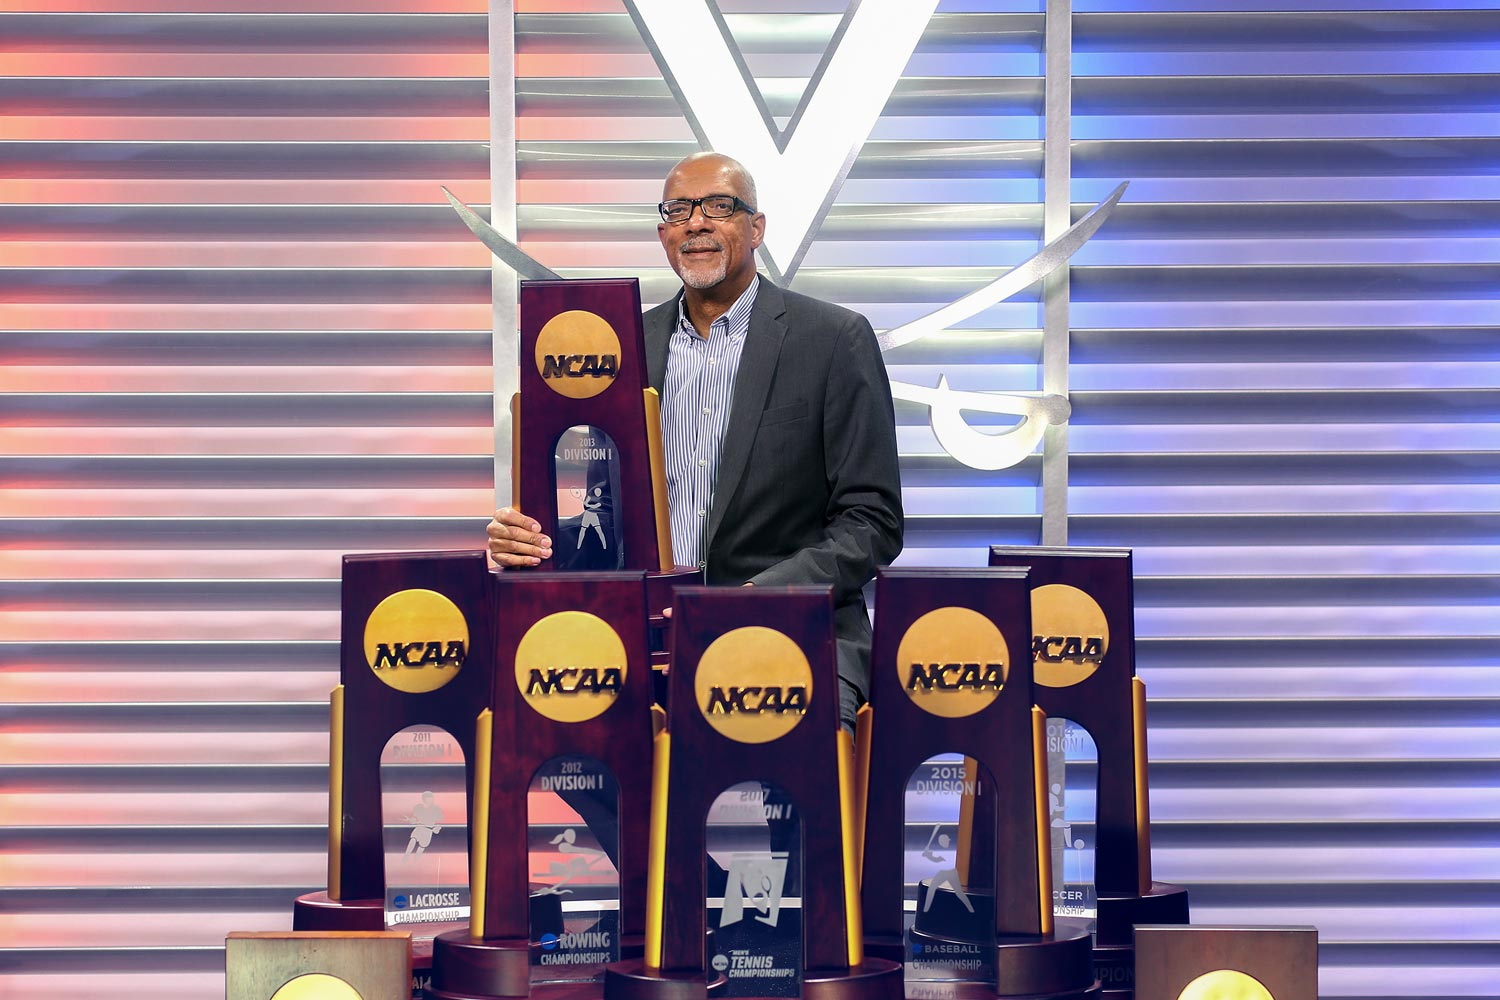 Thirteen NCAA championship trophies are emblematic of the all-around success of UVA's athletics program under the leadership of Craig Littlepage.